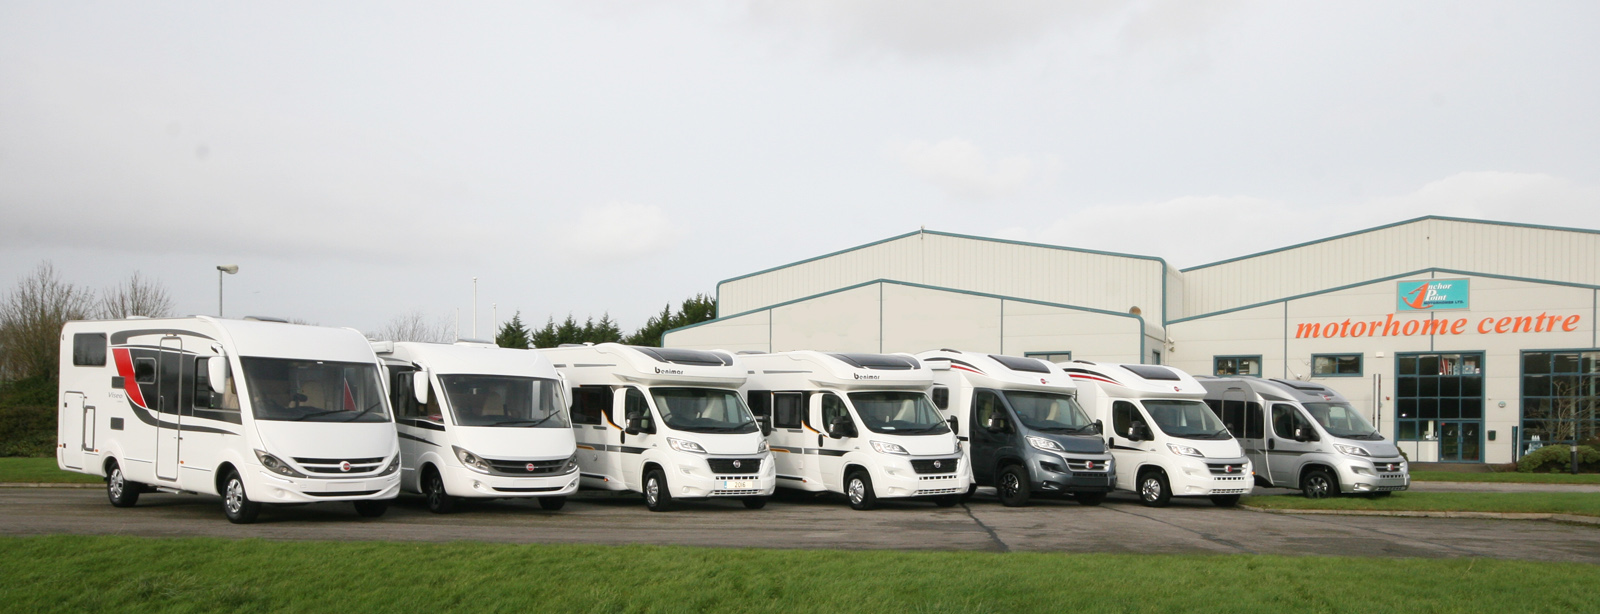 148b6e401e You can rest assured when you collect your motorhome from Anchor Point it  is fully serviced